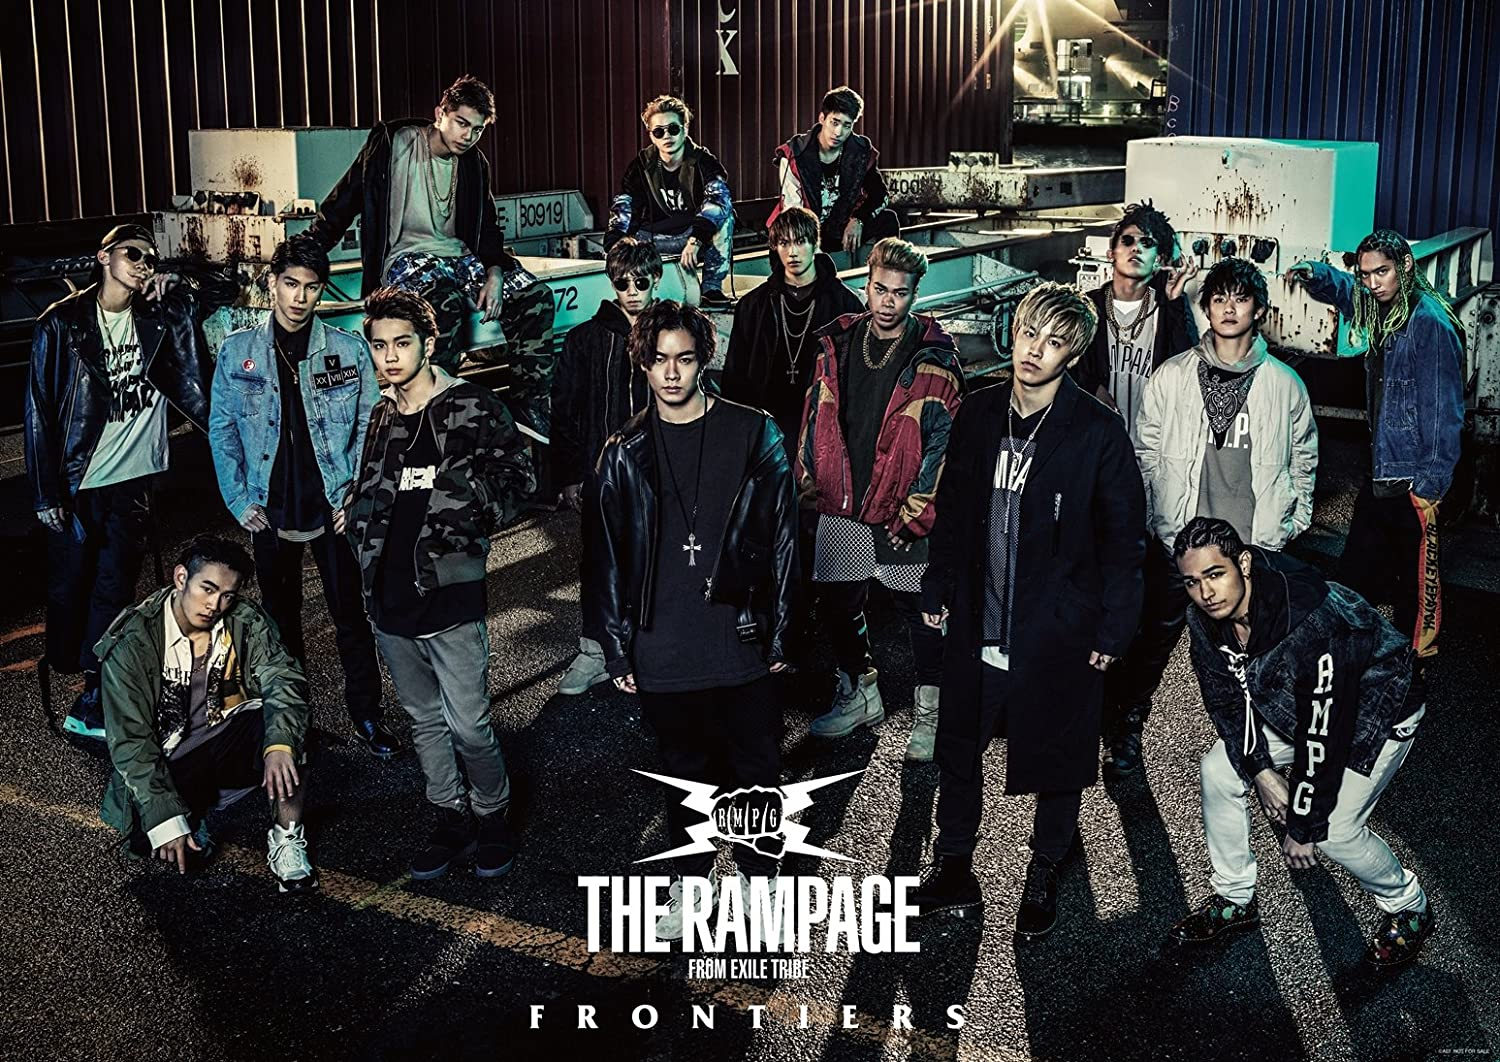 The Rampage From Exile Tribe の人気がまとめてわかる 評価や評判